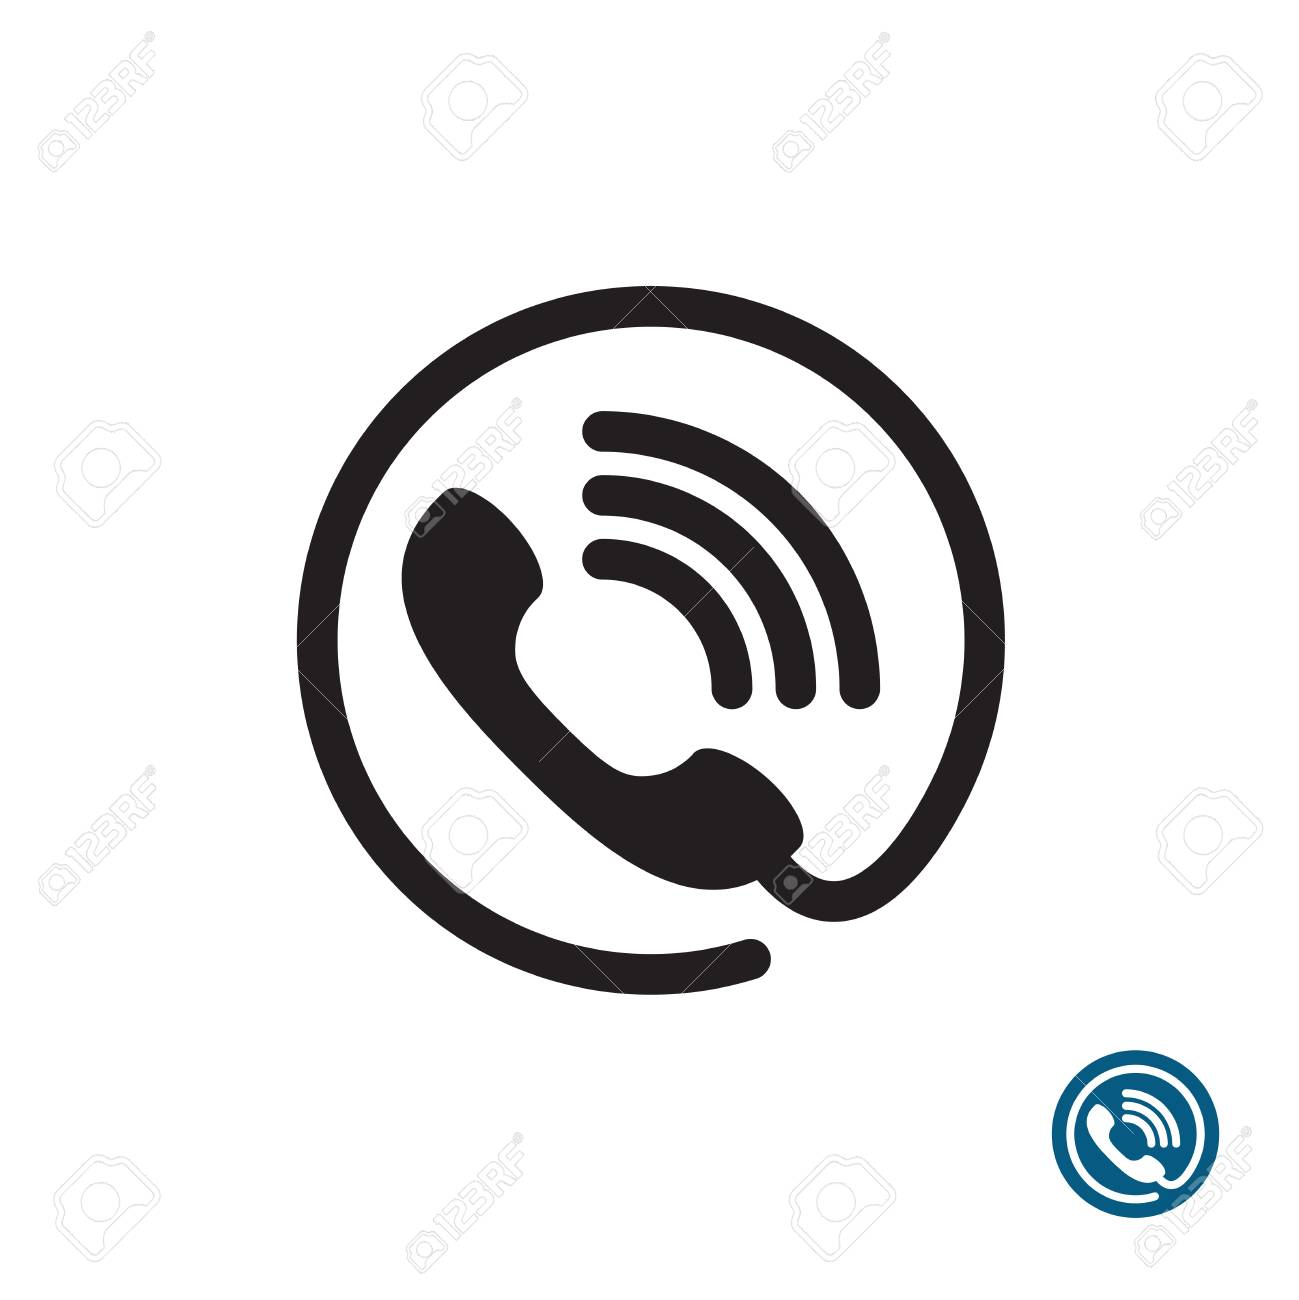 Phone Black Simple Icon. Round With Wire And Sound Waves Symbol ...